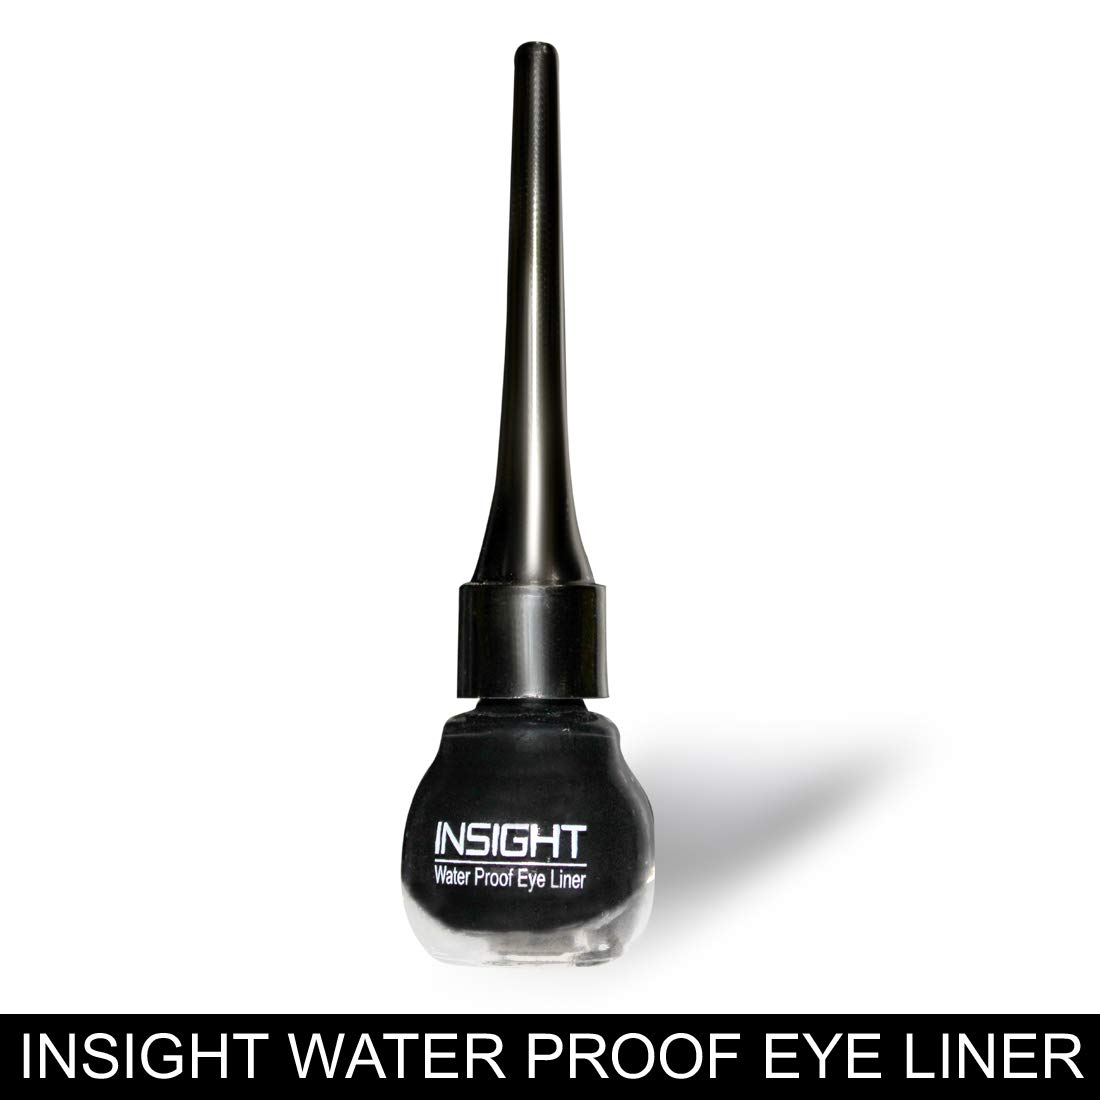 INSIGHT Vov Eyeliner, 5 ml (Black) product image